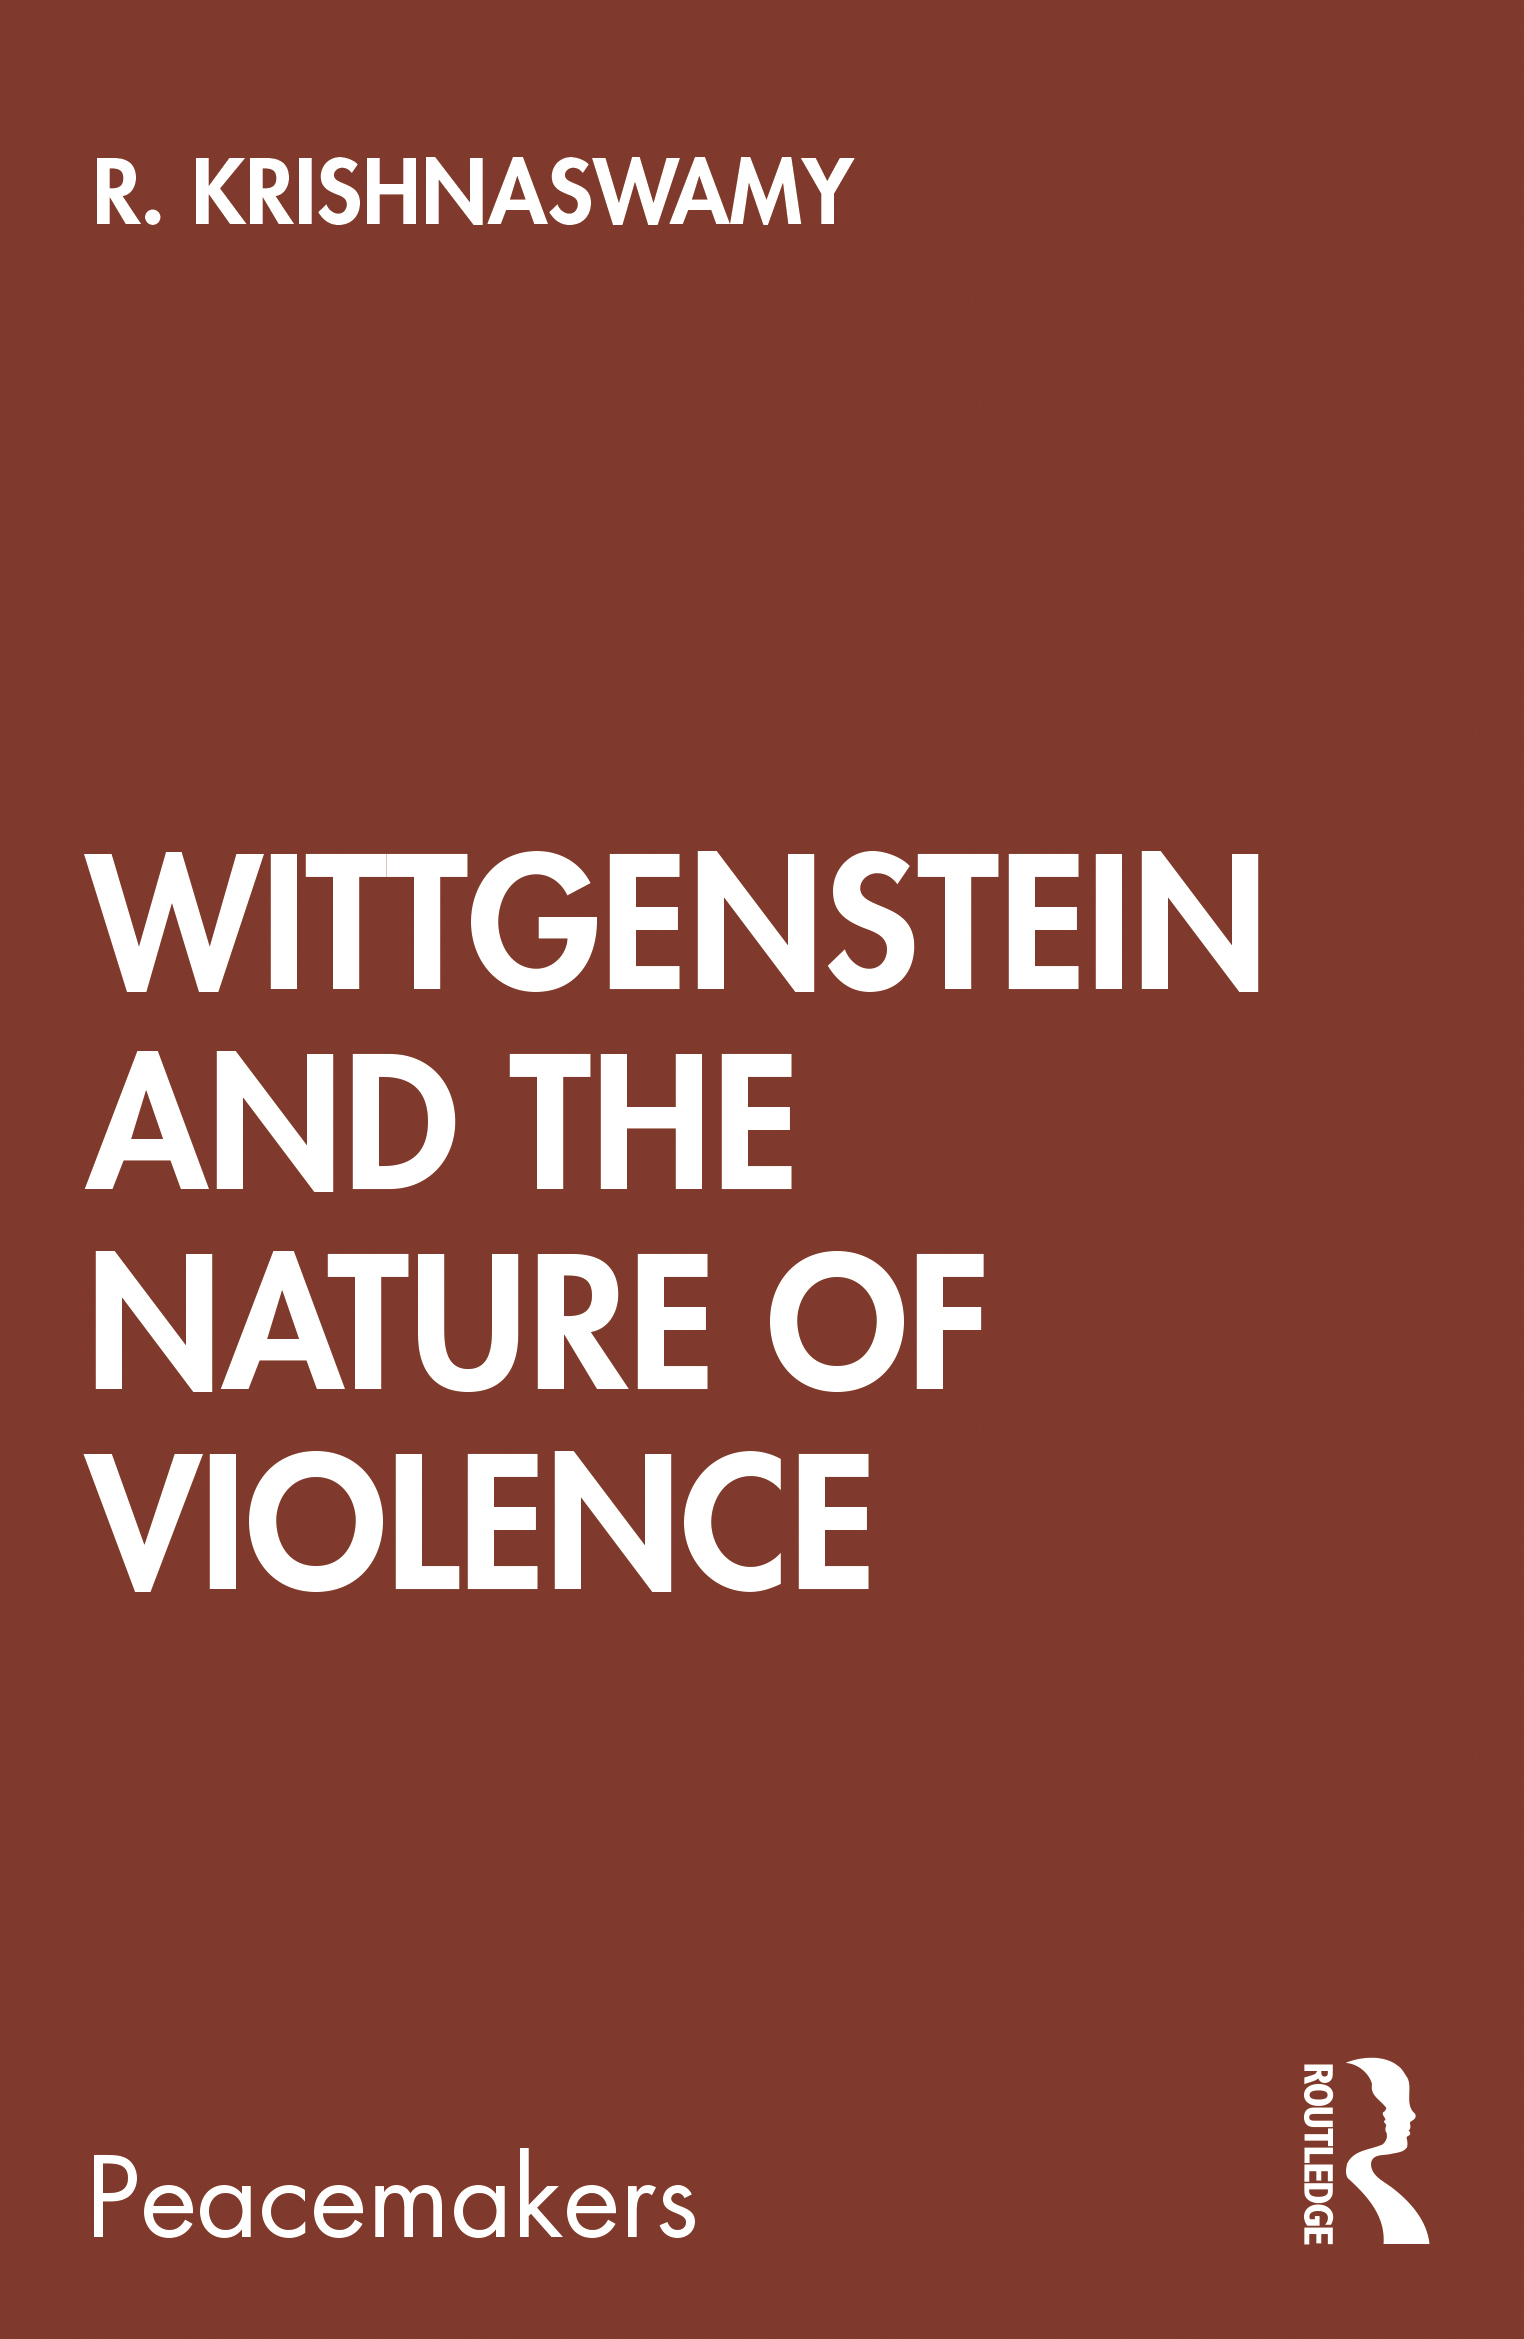 Wittgenstein and the Nature of Violence